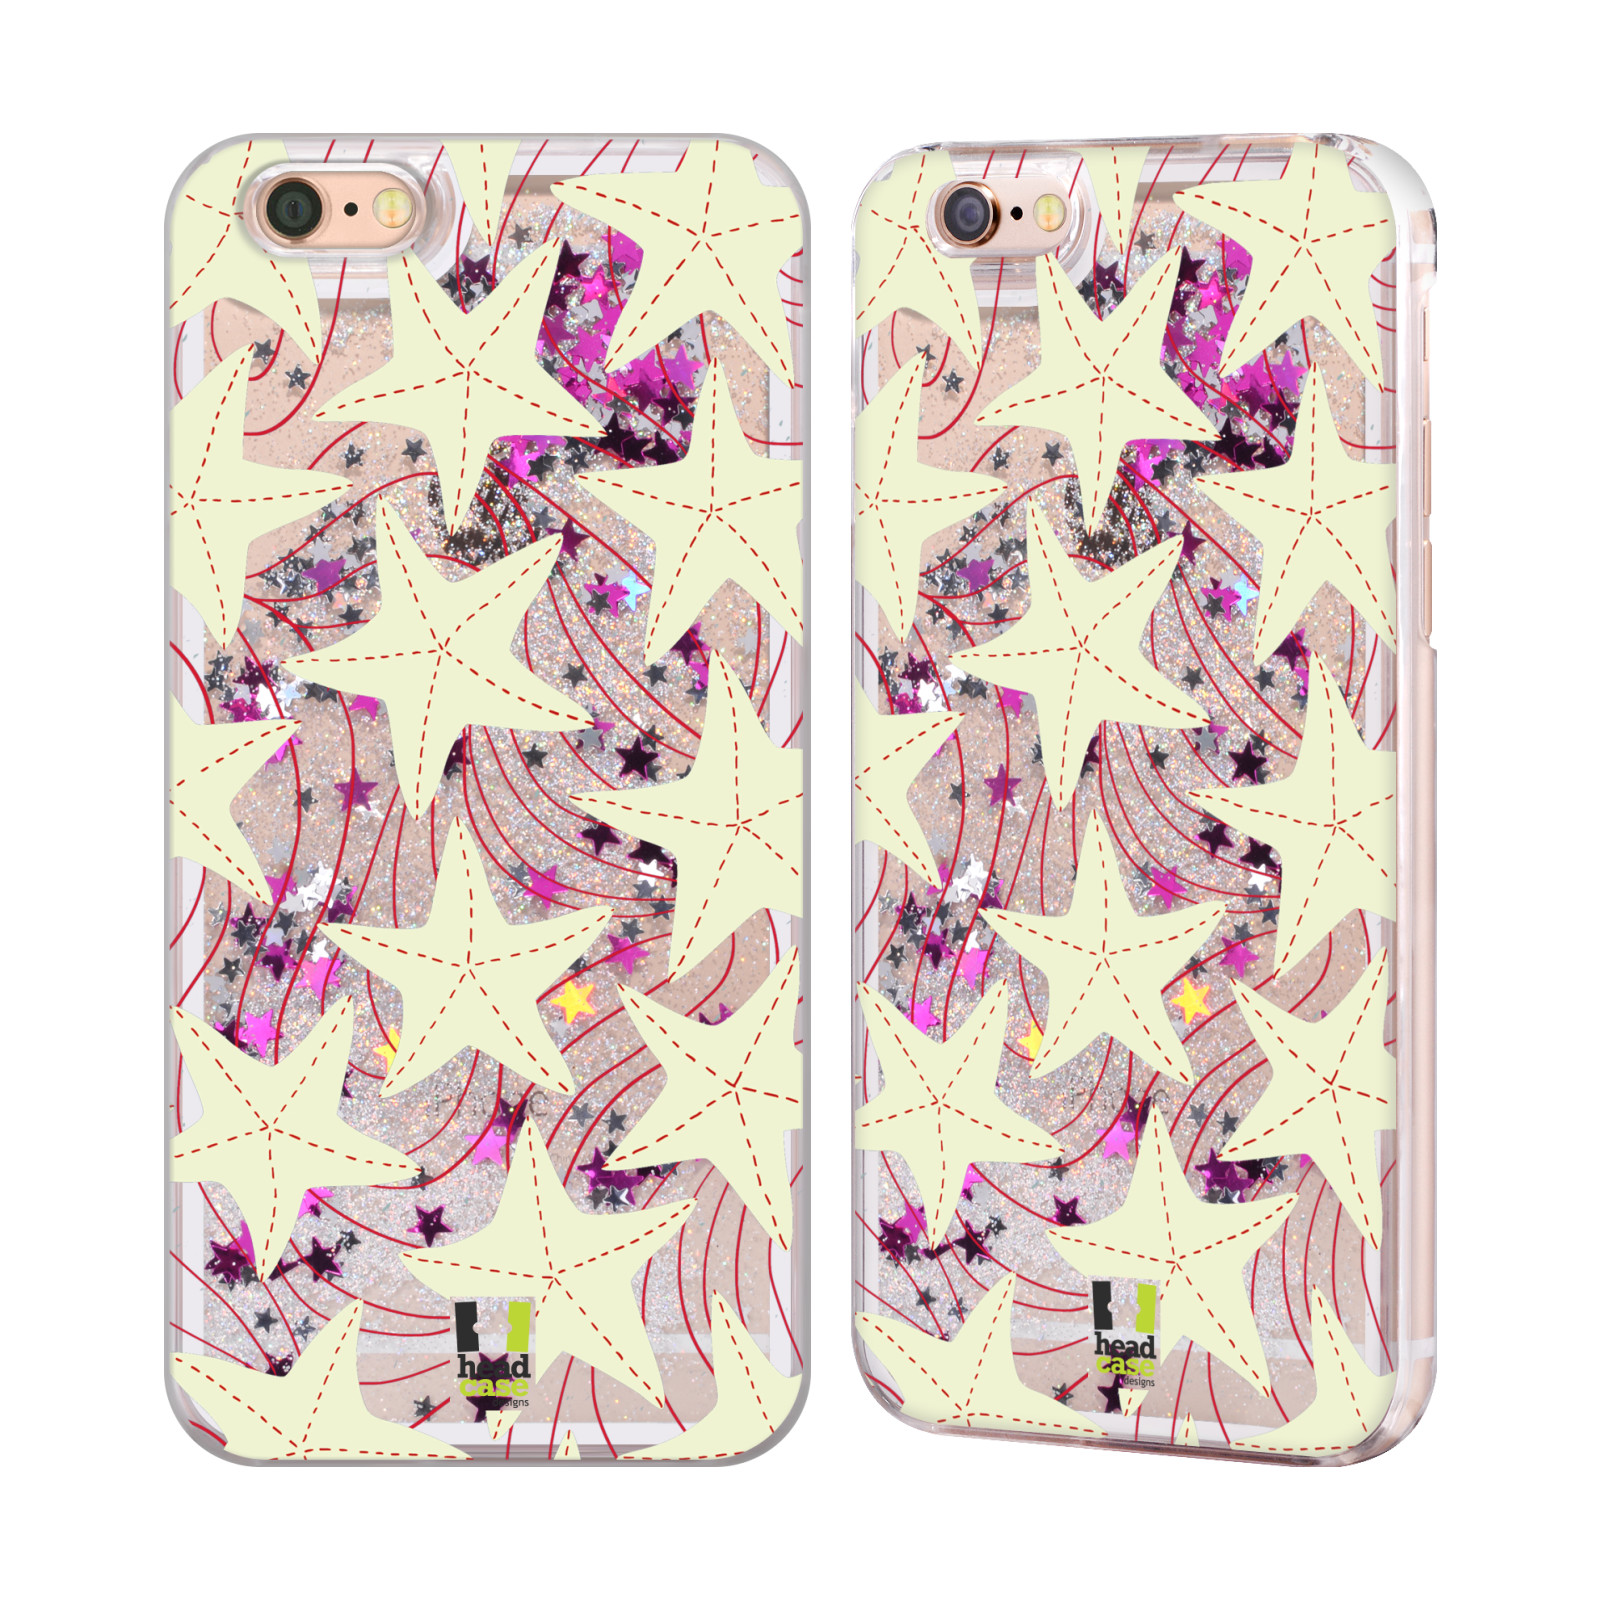 MODELES-MARINS-ETUI-COQUE-SCINTILLEZ-ARGENT-POUR-APPLE-iPHONE-SAMSUNG-PHONES